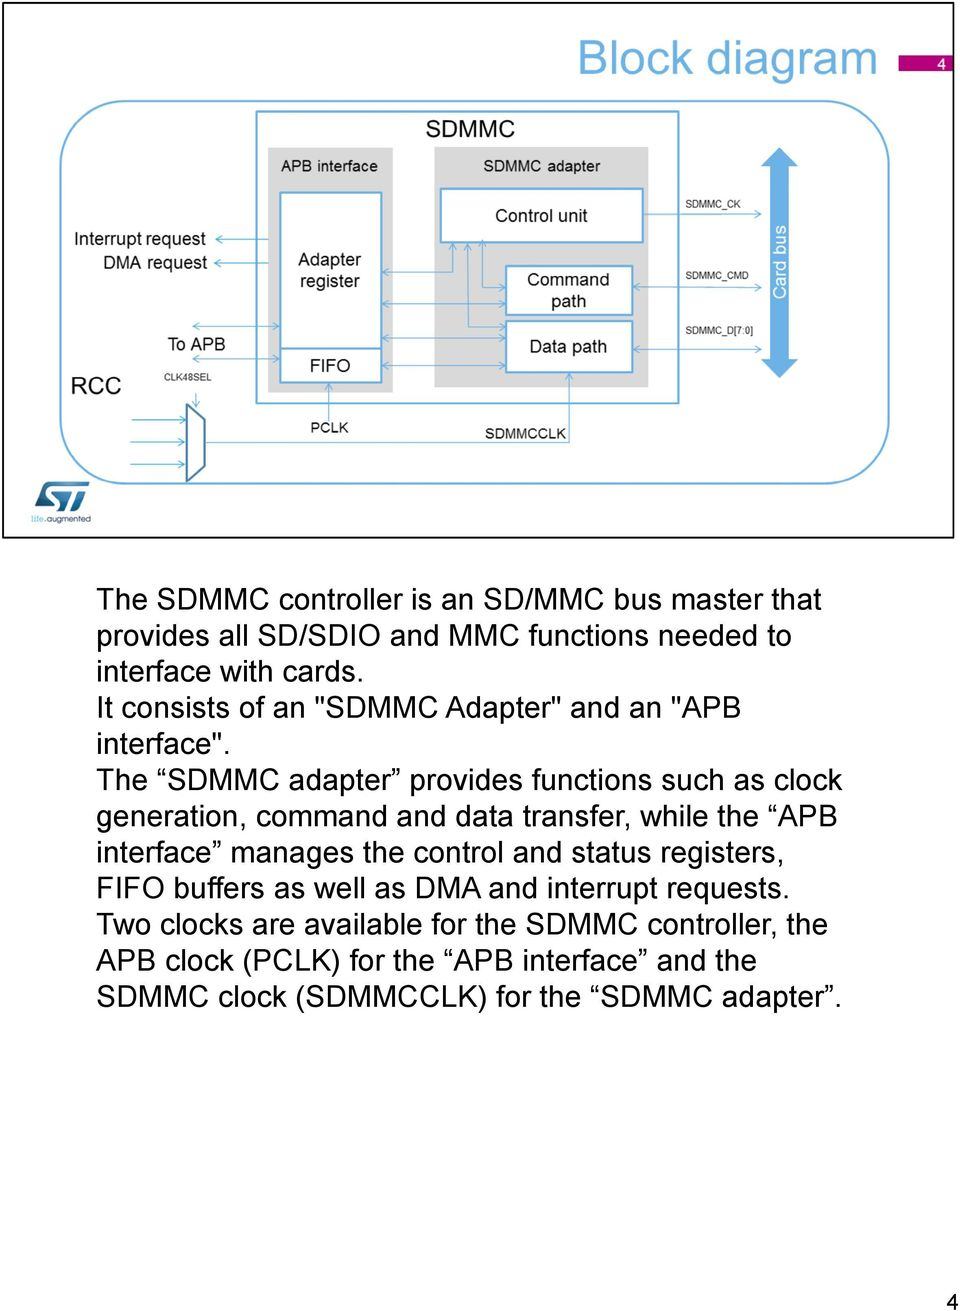 The SDMMC adapter provides functions such as clock generation, command and data transfer, while the APB interface manages the control